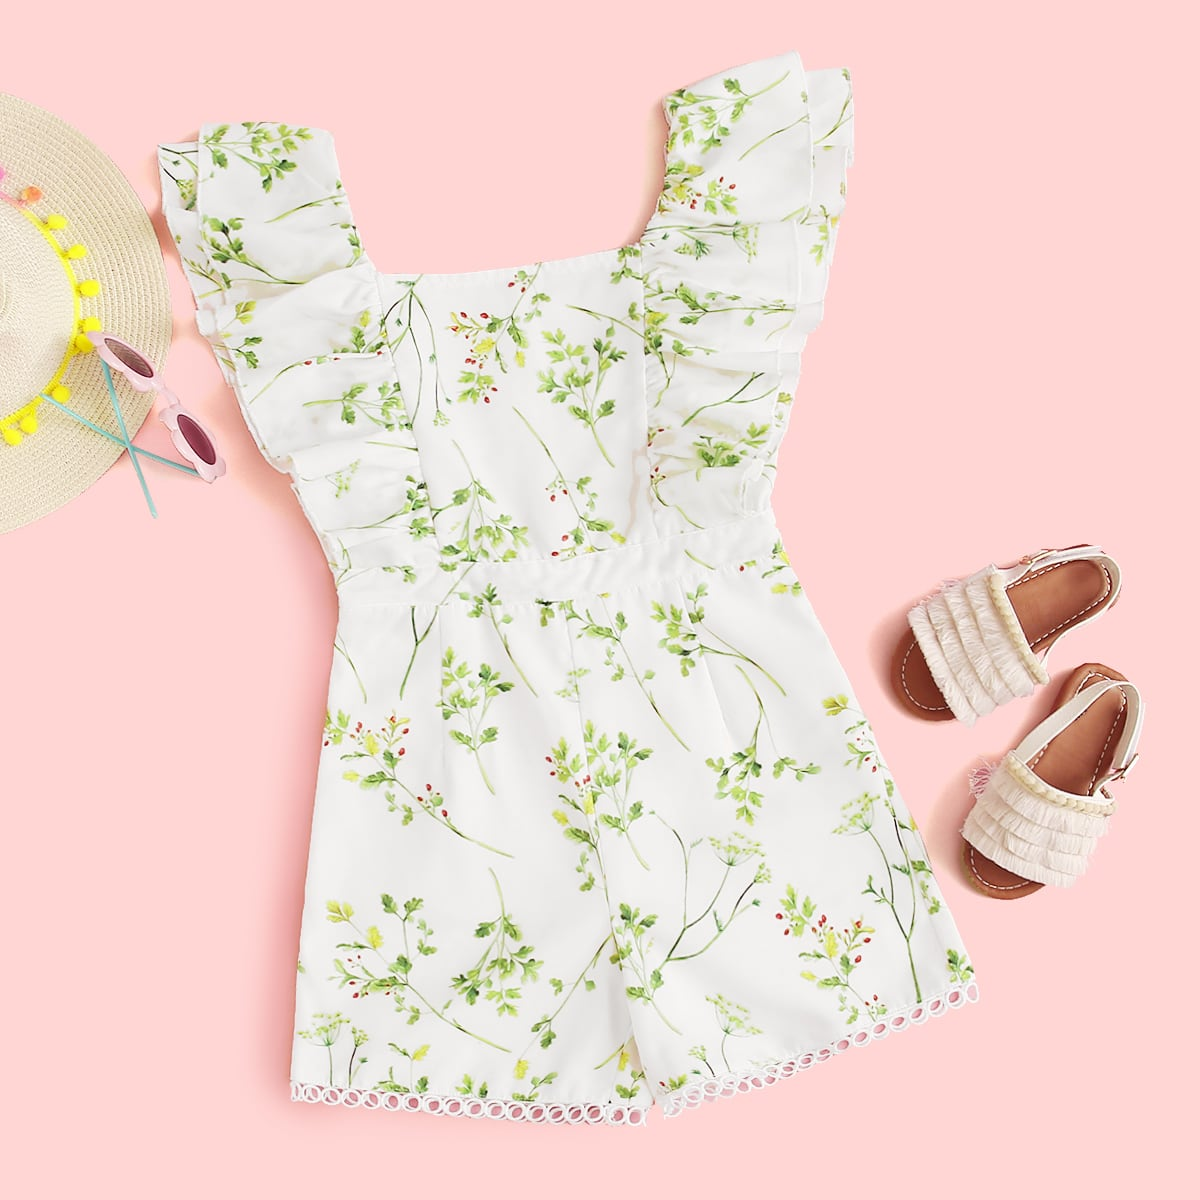 SHEIN / Girls Ruffle Trim Plants Print Romper